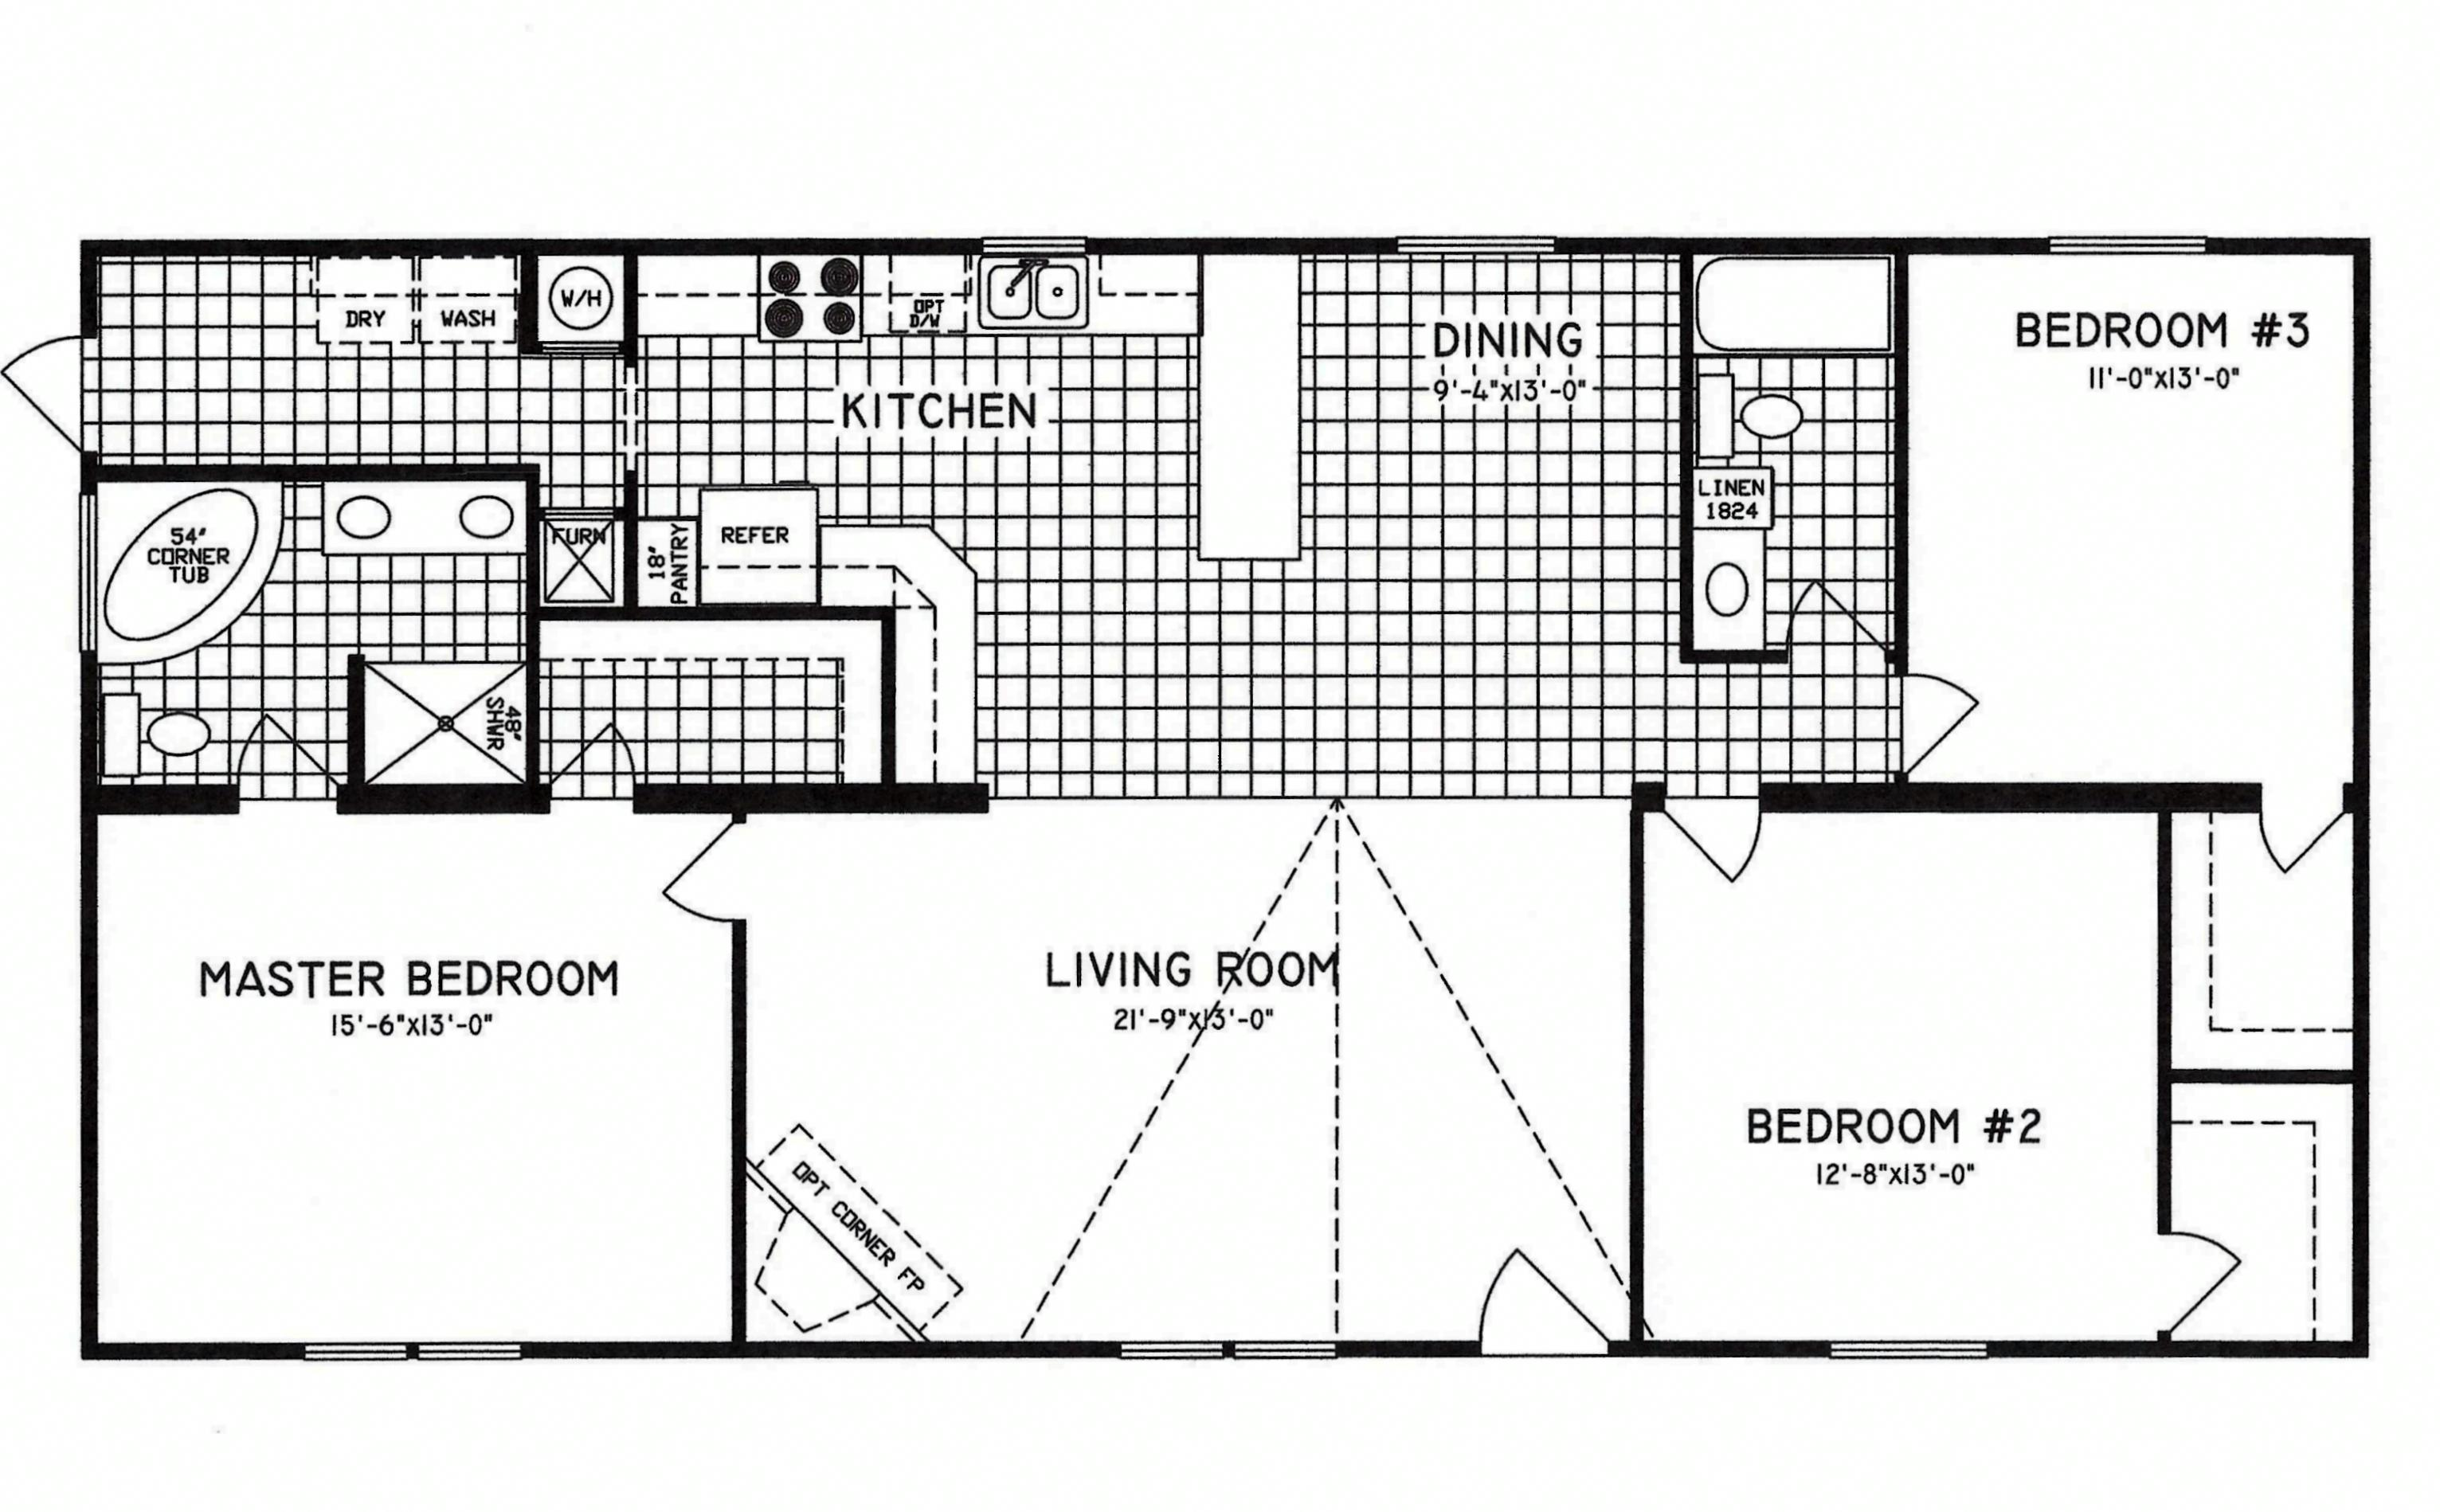 3 bedroom floor plan c 9809 hawks homes manufactured 3 bedroom modular home floor plans